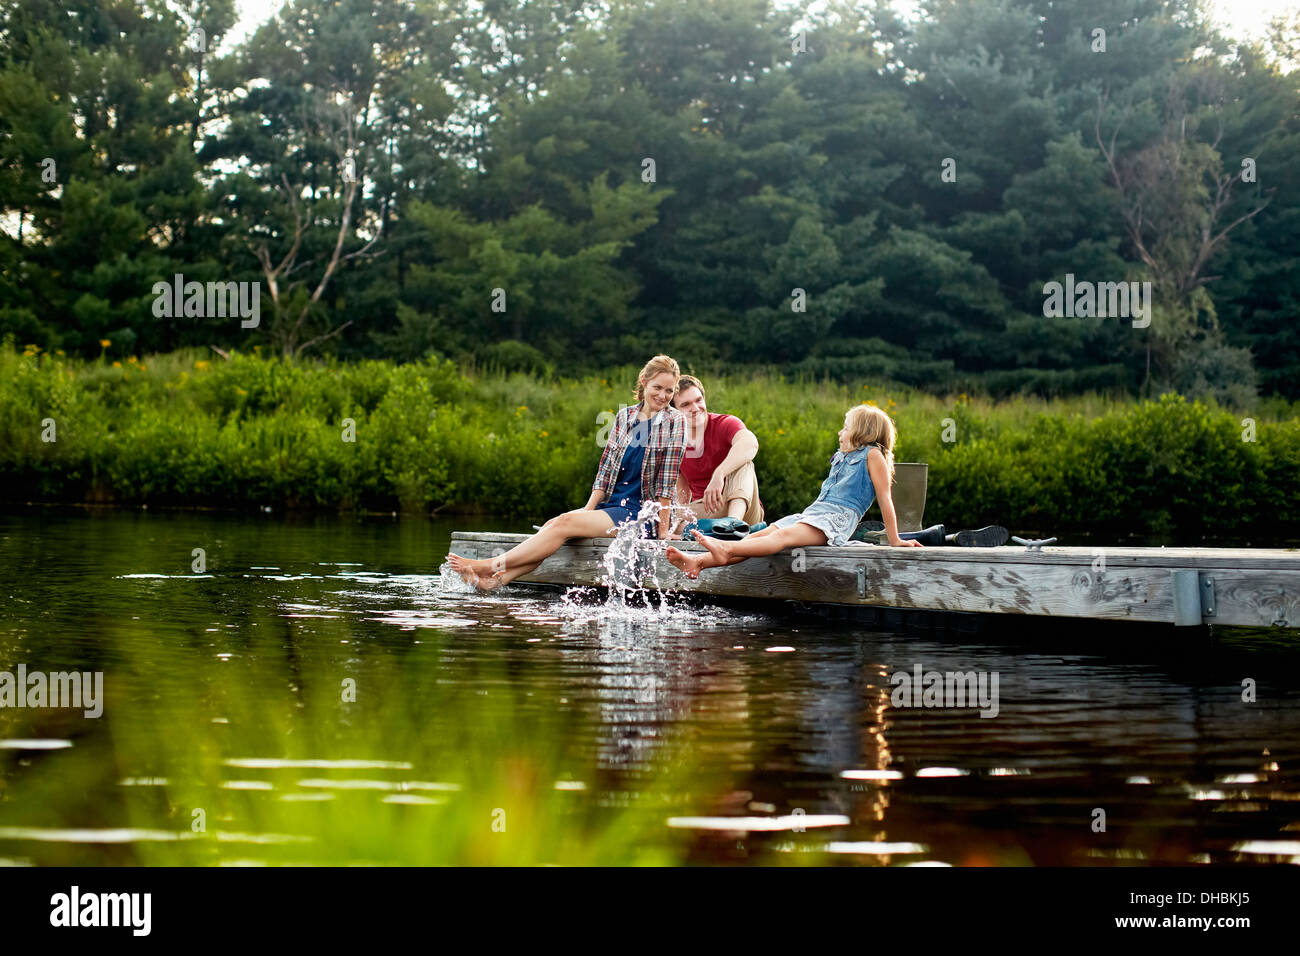 Three people, two adults and a child relaxing on a jetty, with their feet in the water at the end of a day. - Stock Image